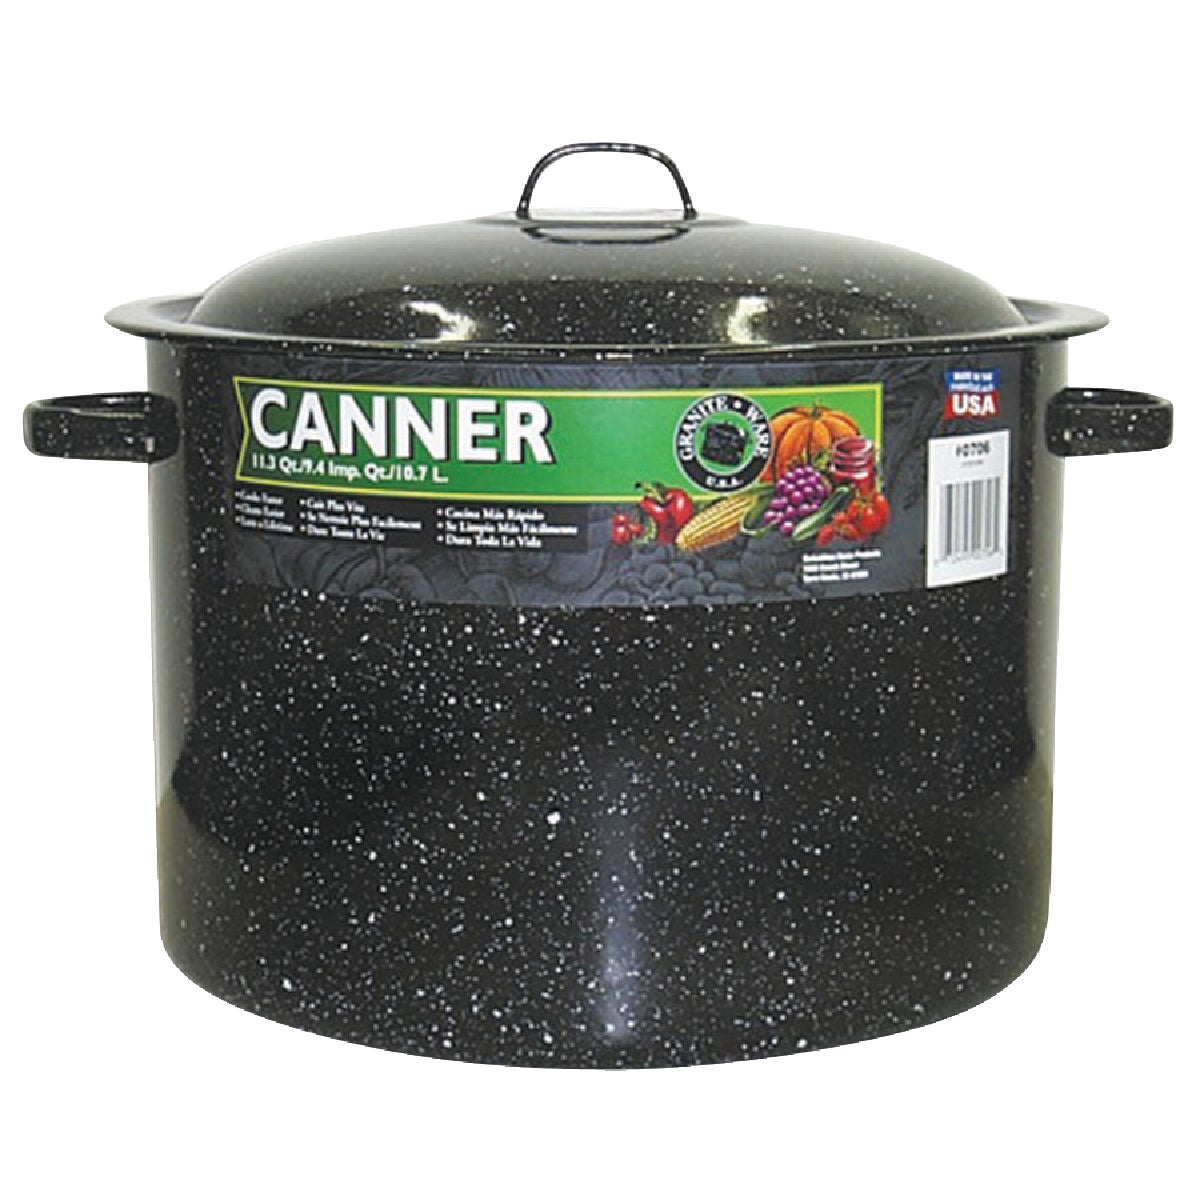 11.5QT CANNER - 0706-6 by Columbian Home Prod